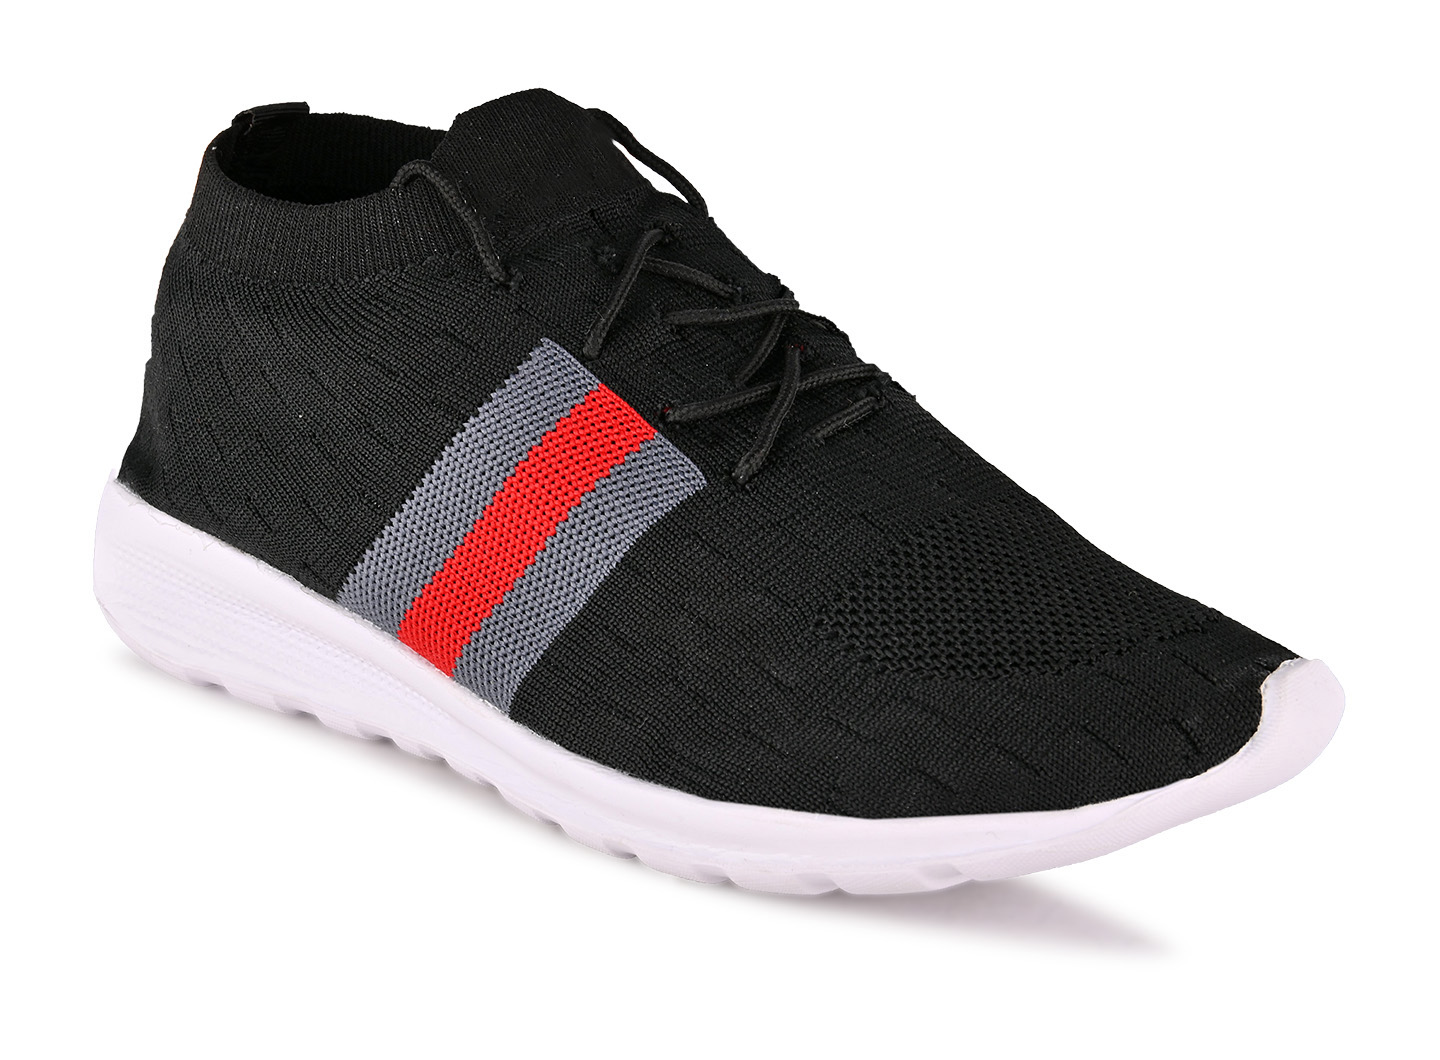 JK PORT Comfortable And Trendy Sports Shoes JKPSB59BKRD Are Reliable For Any Sports (Black,6-10,8 PAIR)